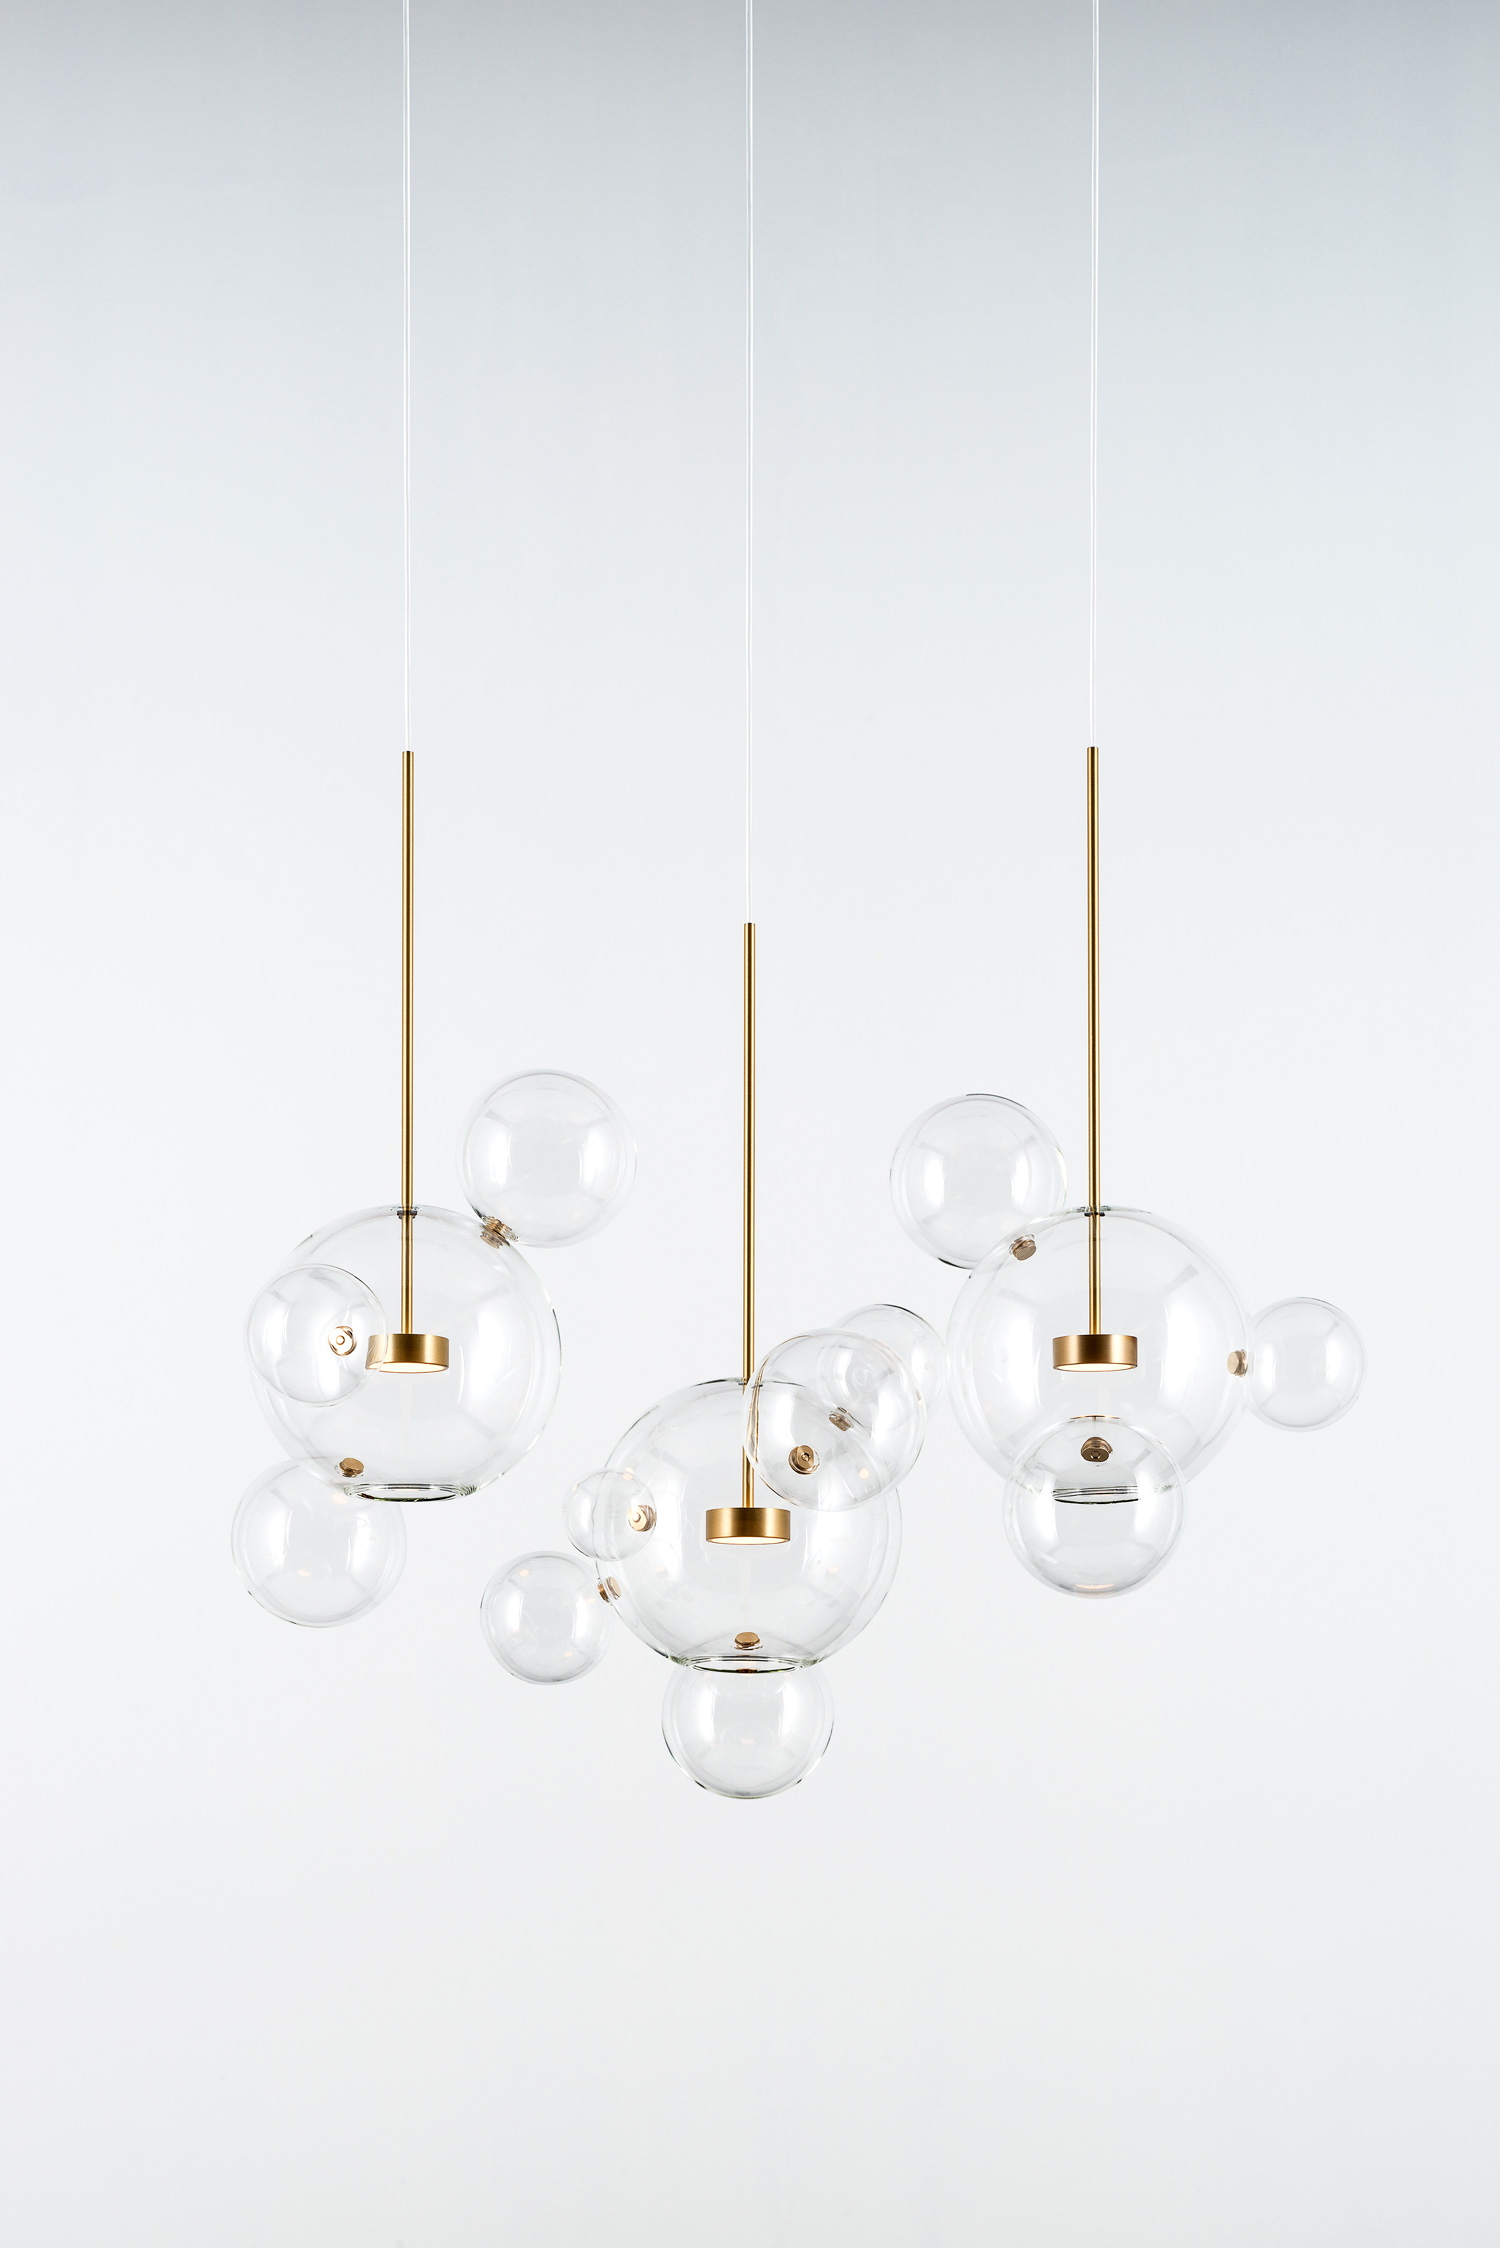 Giopato_Coombes_Bolle_Linear_Chandelier_14_Bubbles_Ph_FedericoVilla.jpg